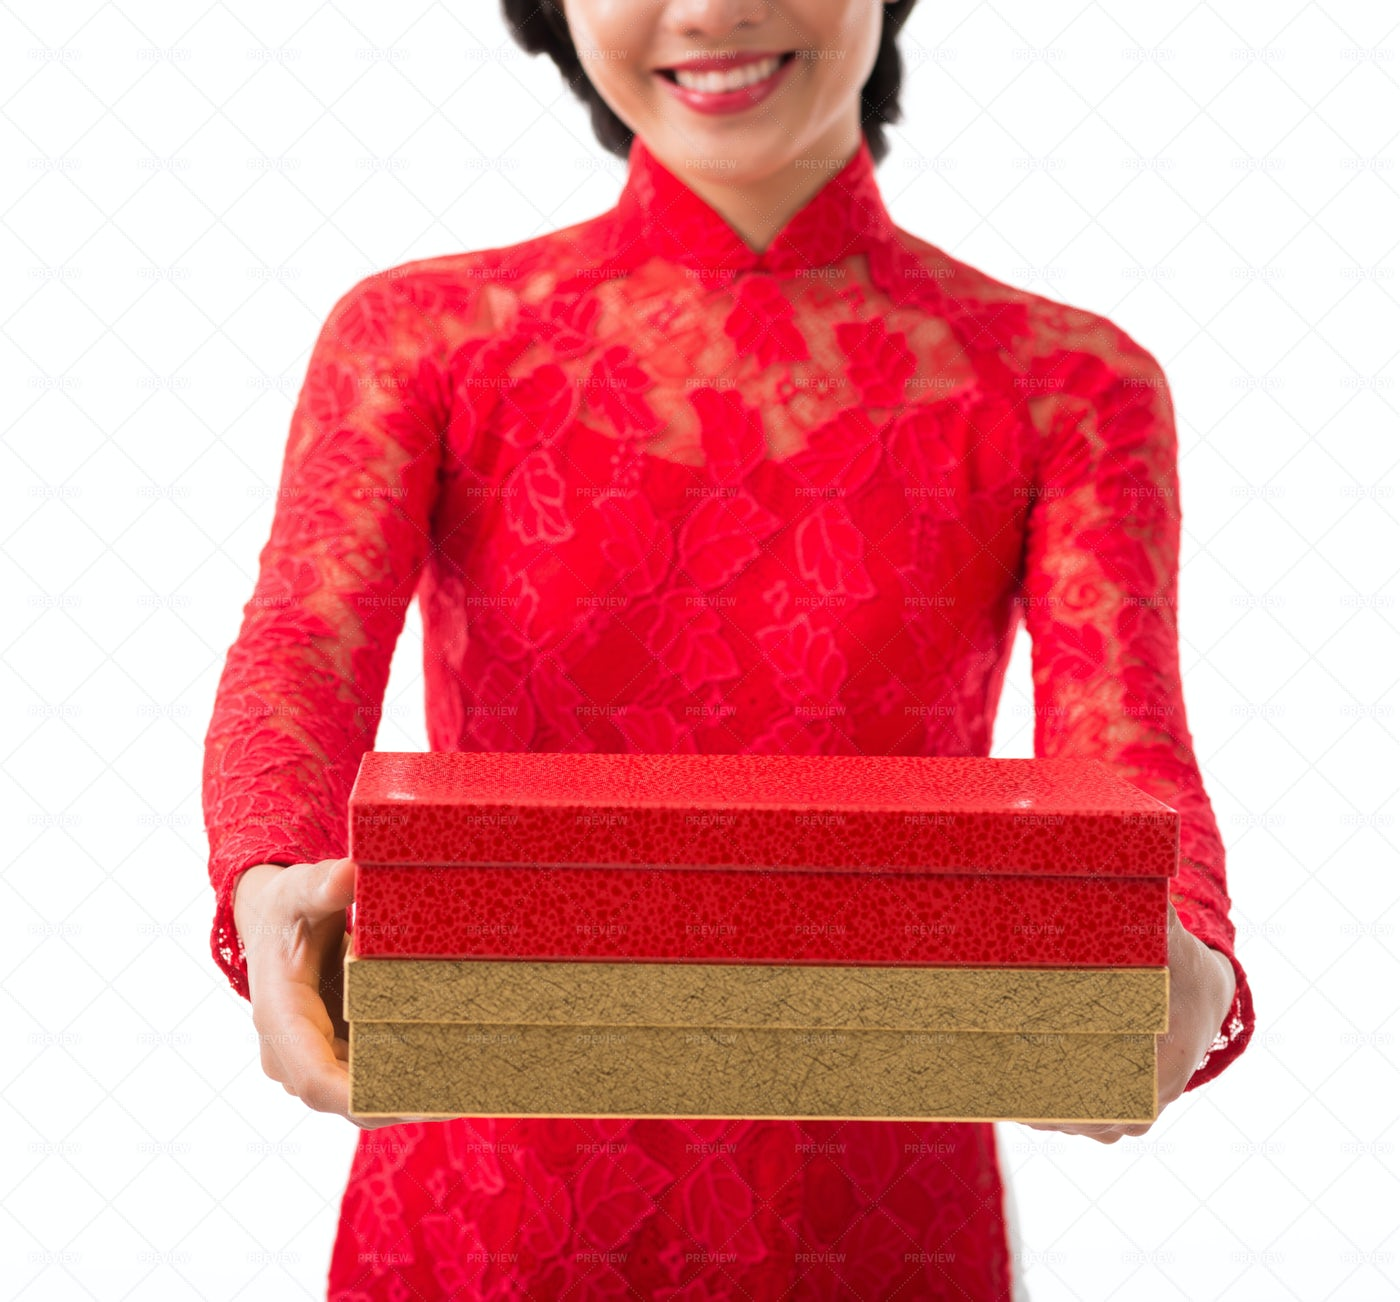 Gifts For Tet Celebration: Stock Photos